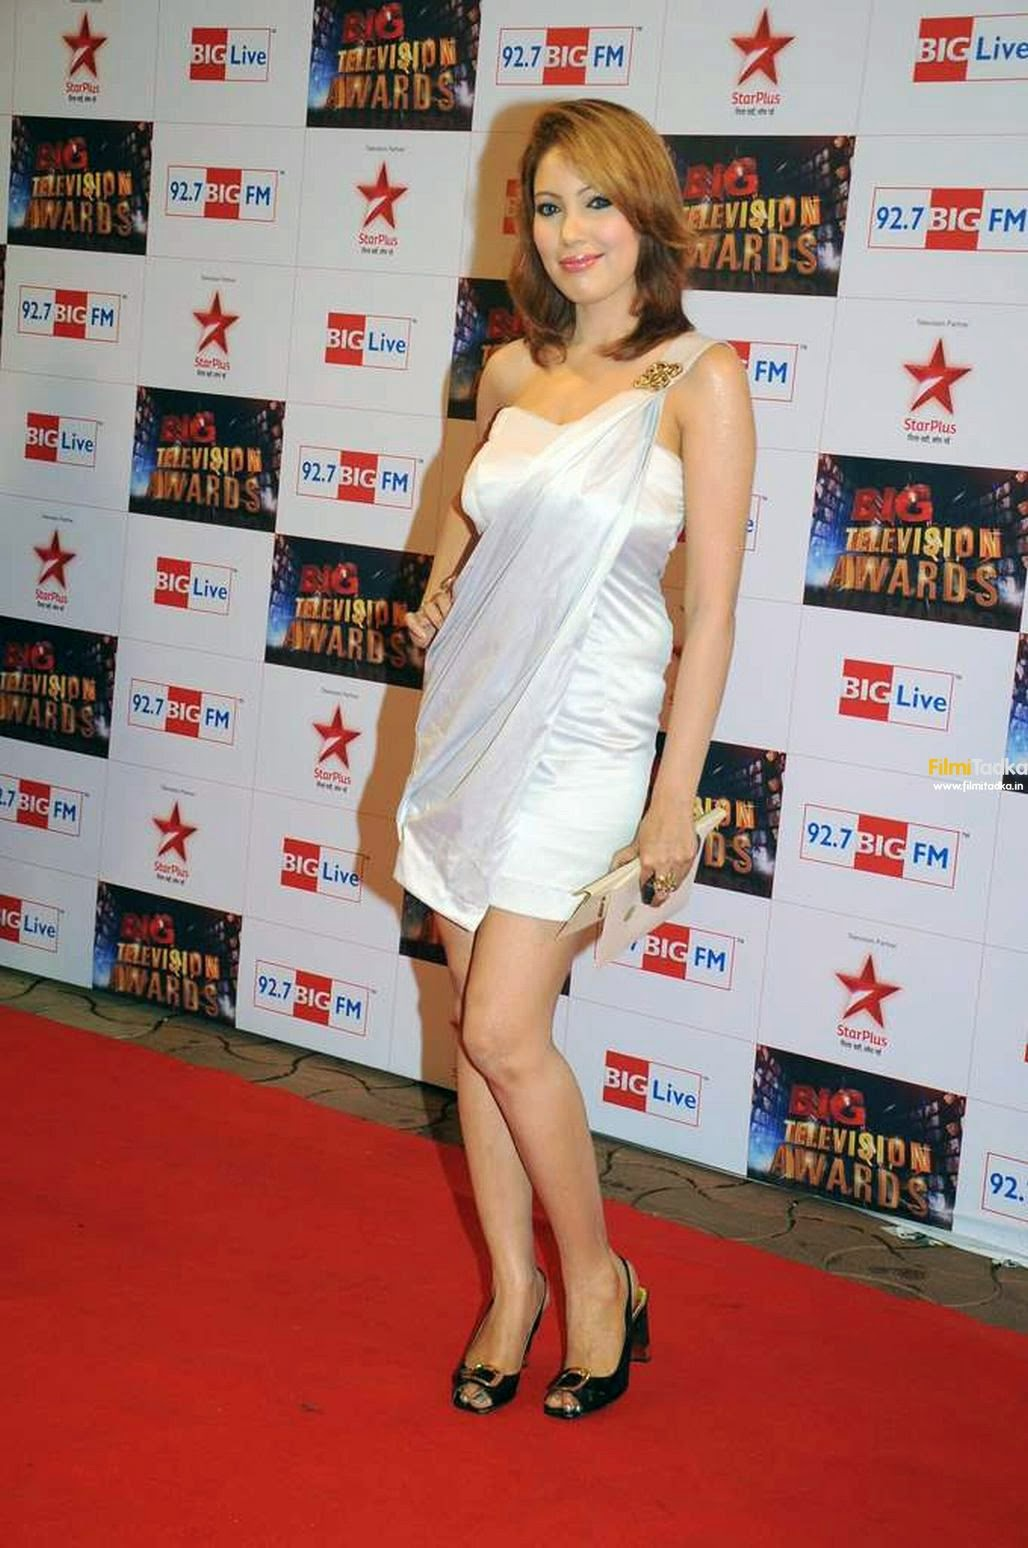 Sexy babita ji in awards